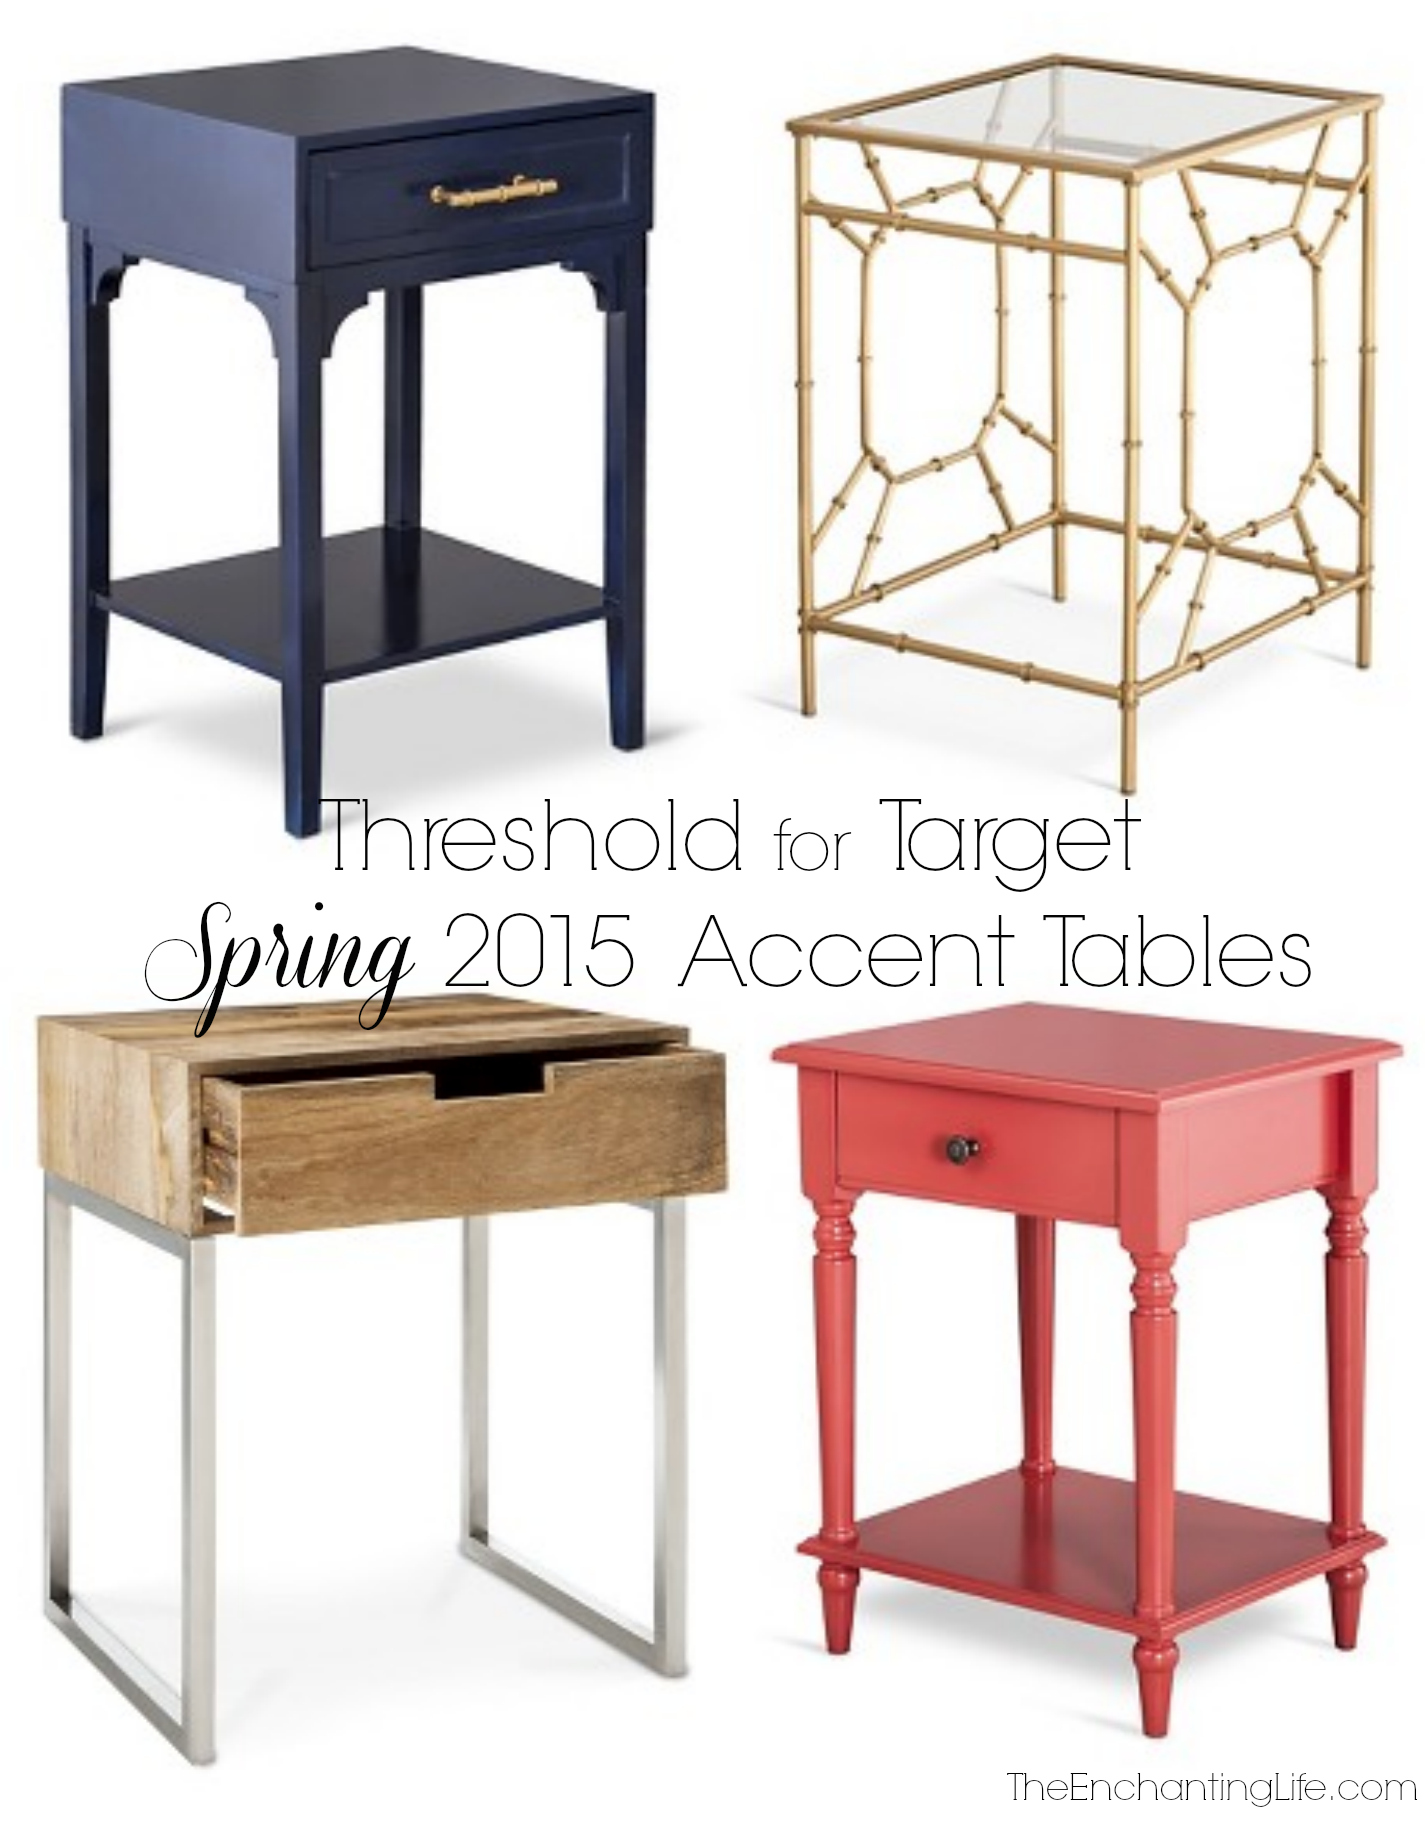 accent tables threshold for target spring the enchanting life gold table tablecloths large small round pedestal side metal coffee clear acrylic trunk cool lamps modern living room